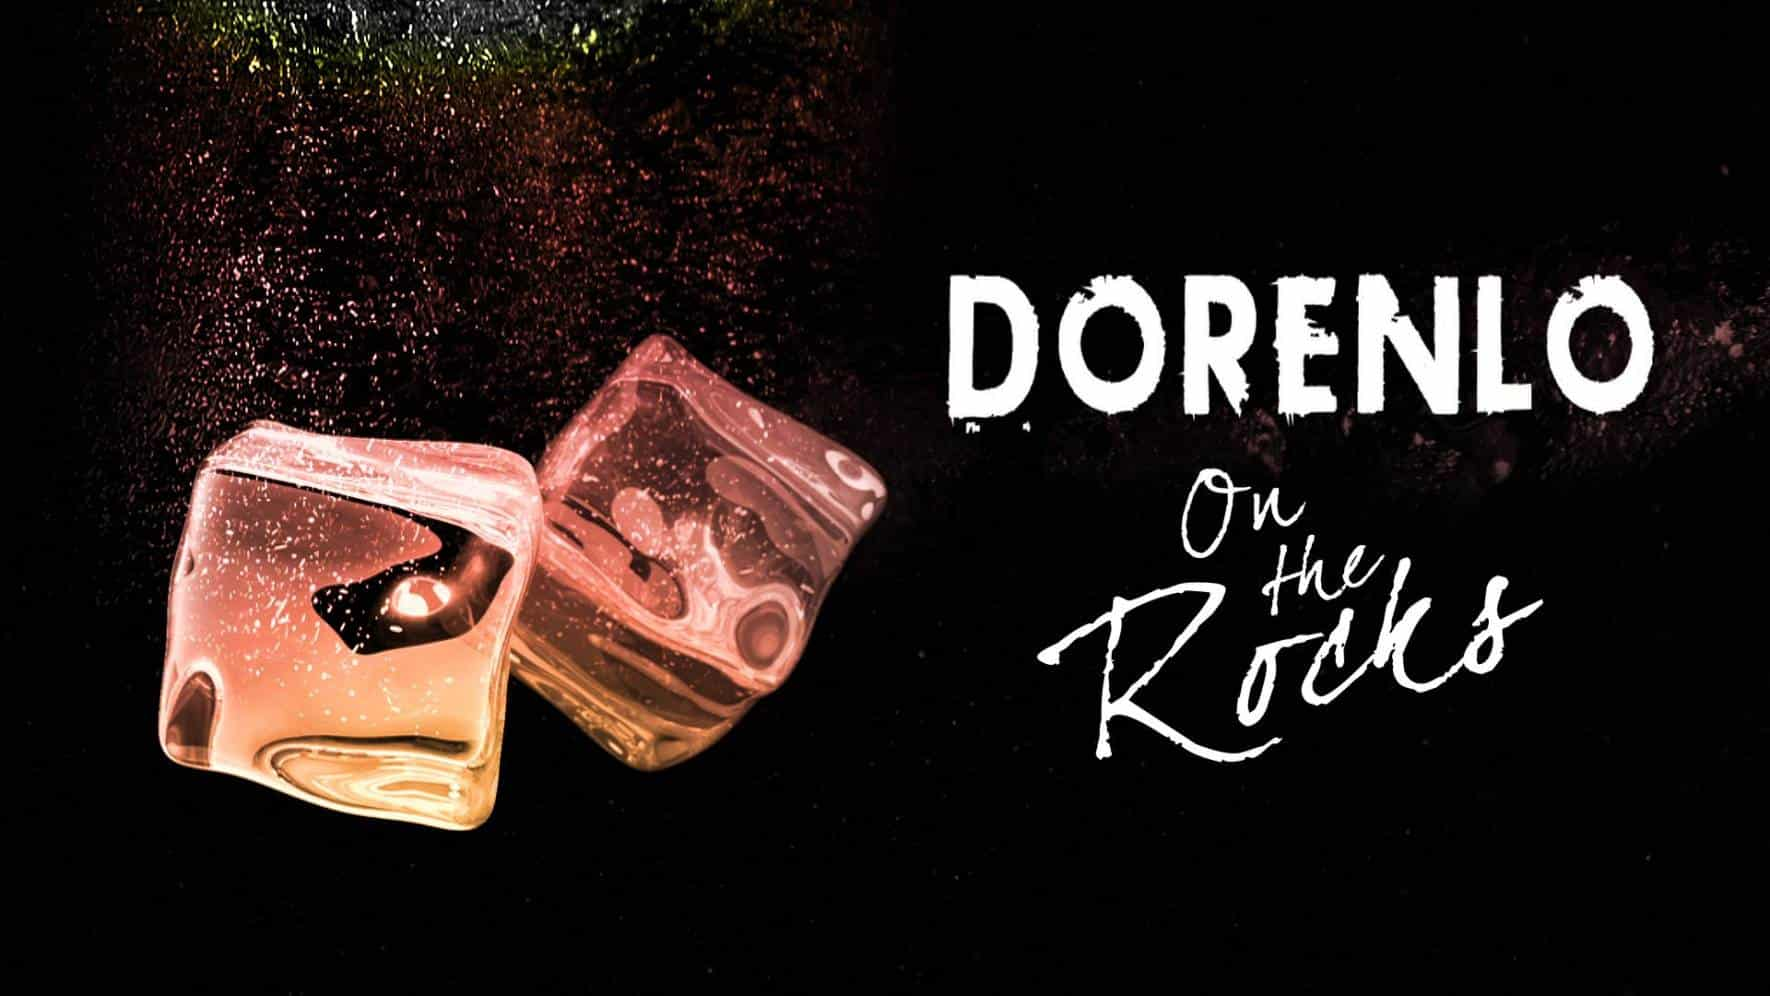 Dorenlo On the rocks